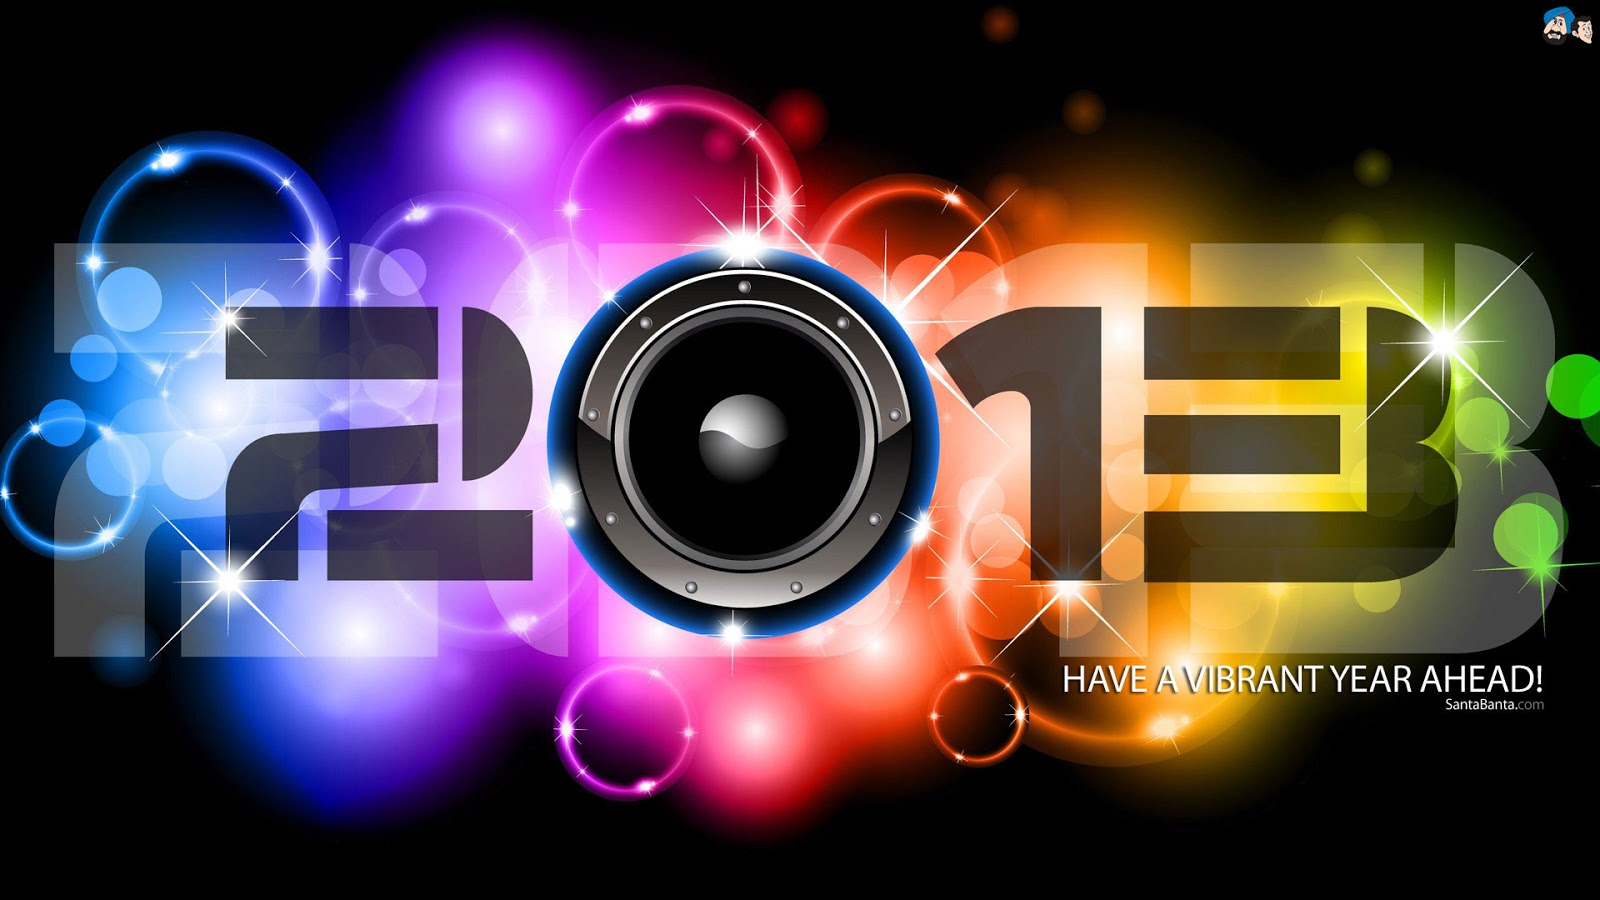 source 9to5wallpapers webloggerz santabanta bestfunforall. 1600 x 900.Happy New Year Wishes 2014  In Kannada